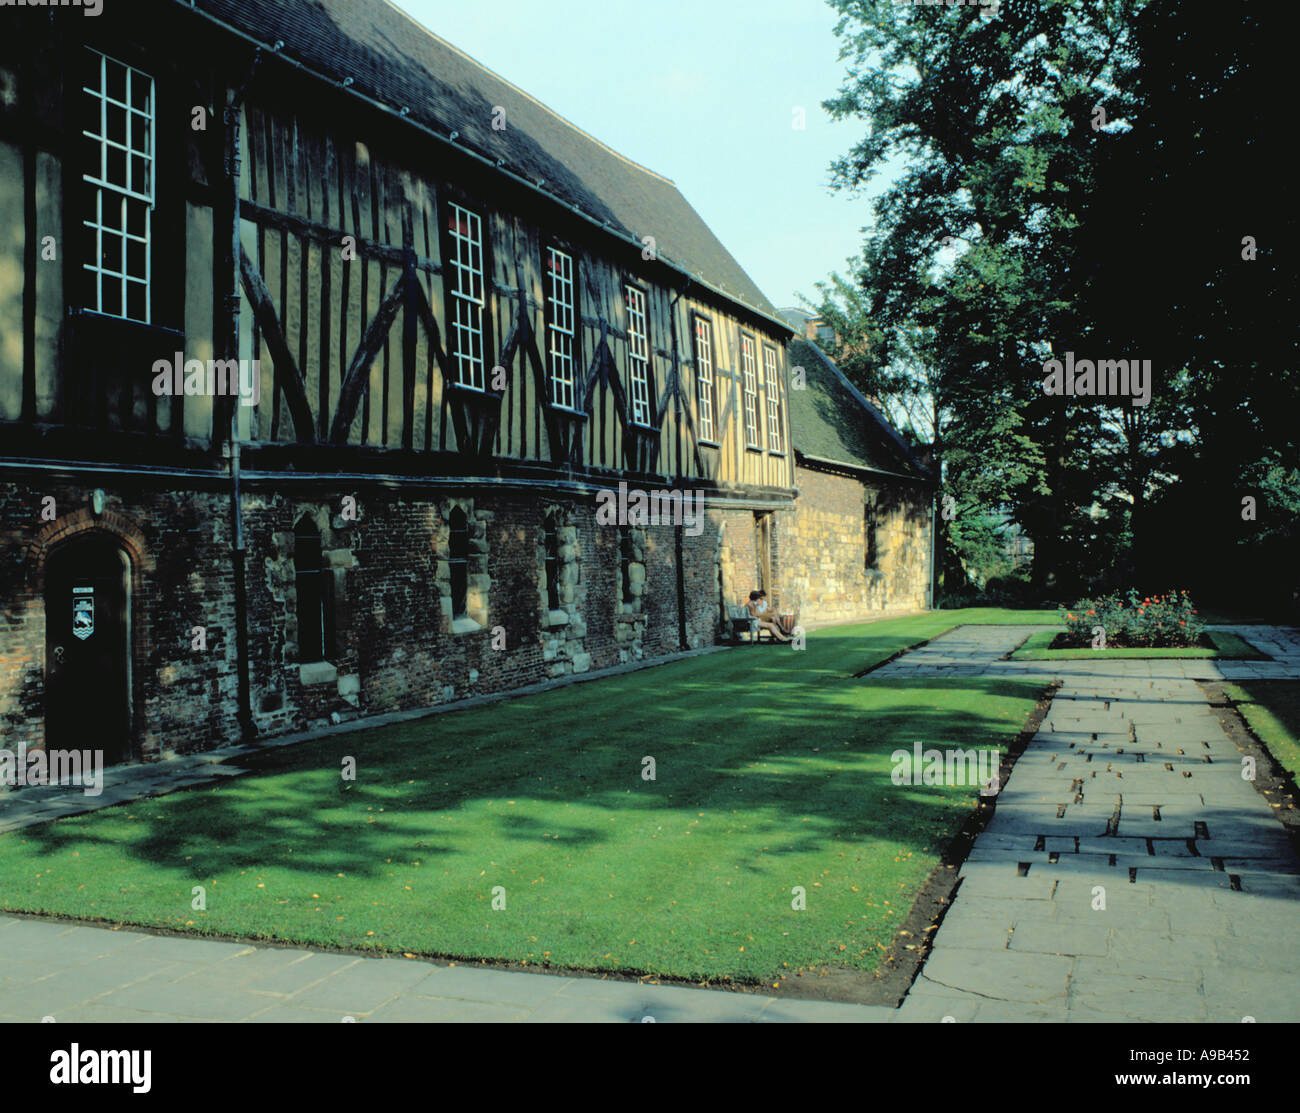 Ancient half timbered picturesque Merchant Adventurers Hall, Fossgate, City of York, North Yorkshire, England, UK. - Stock Image